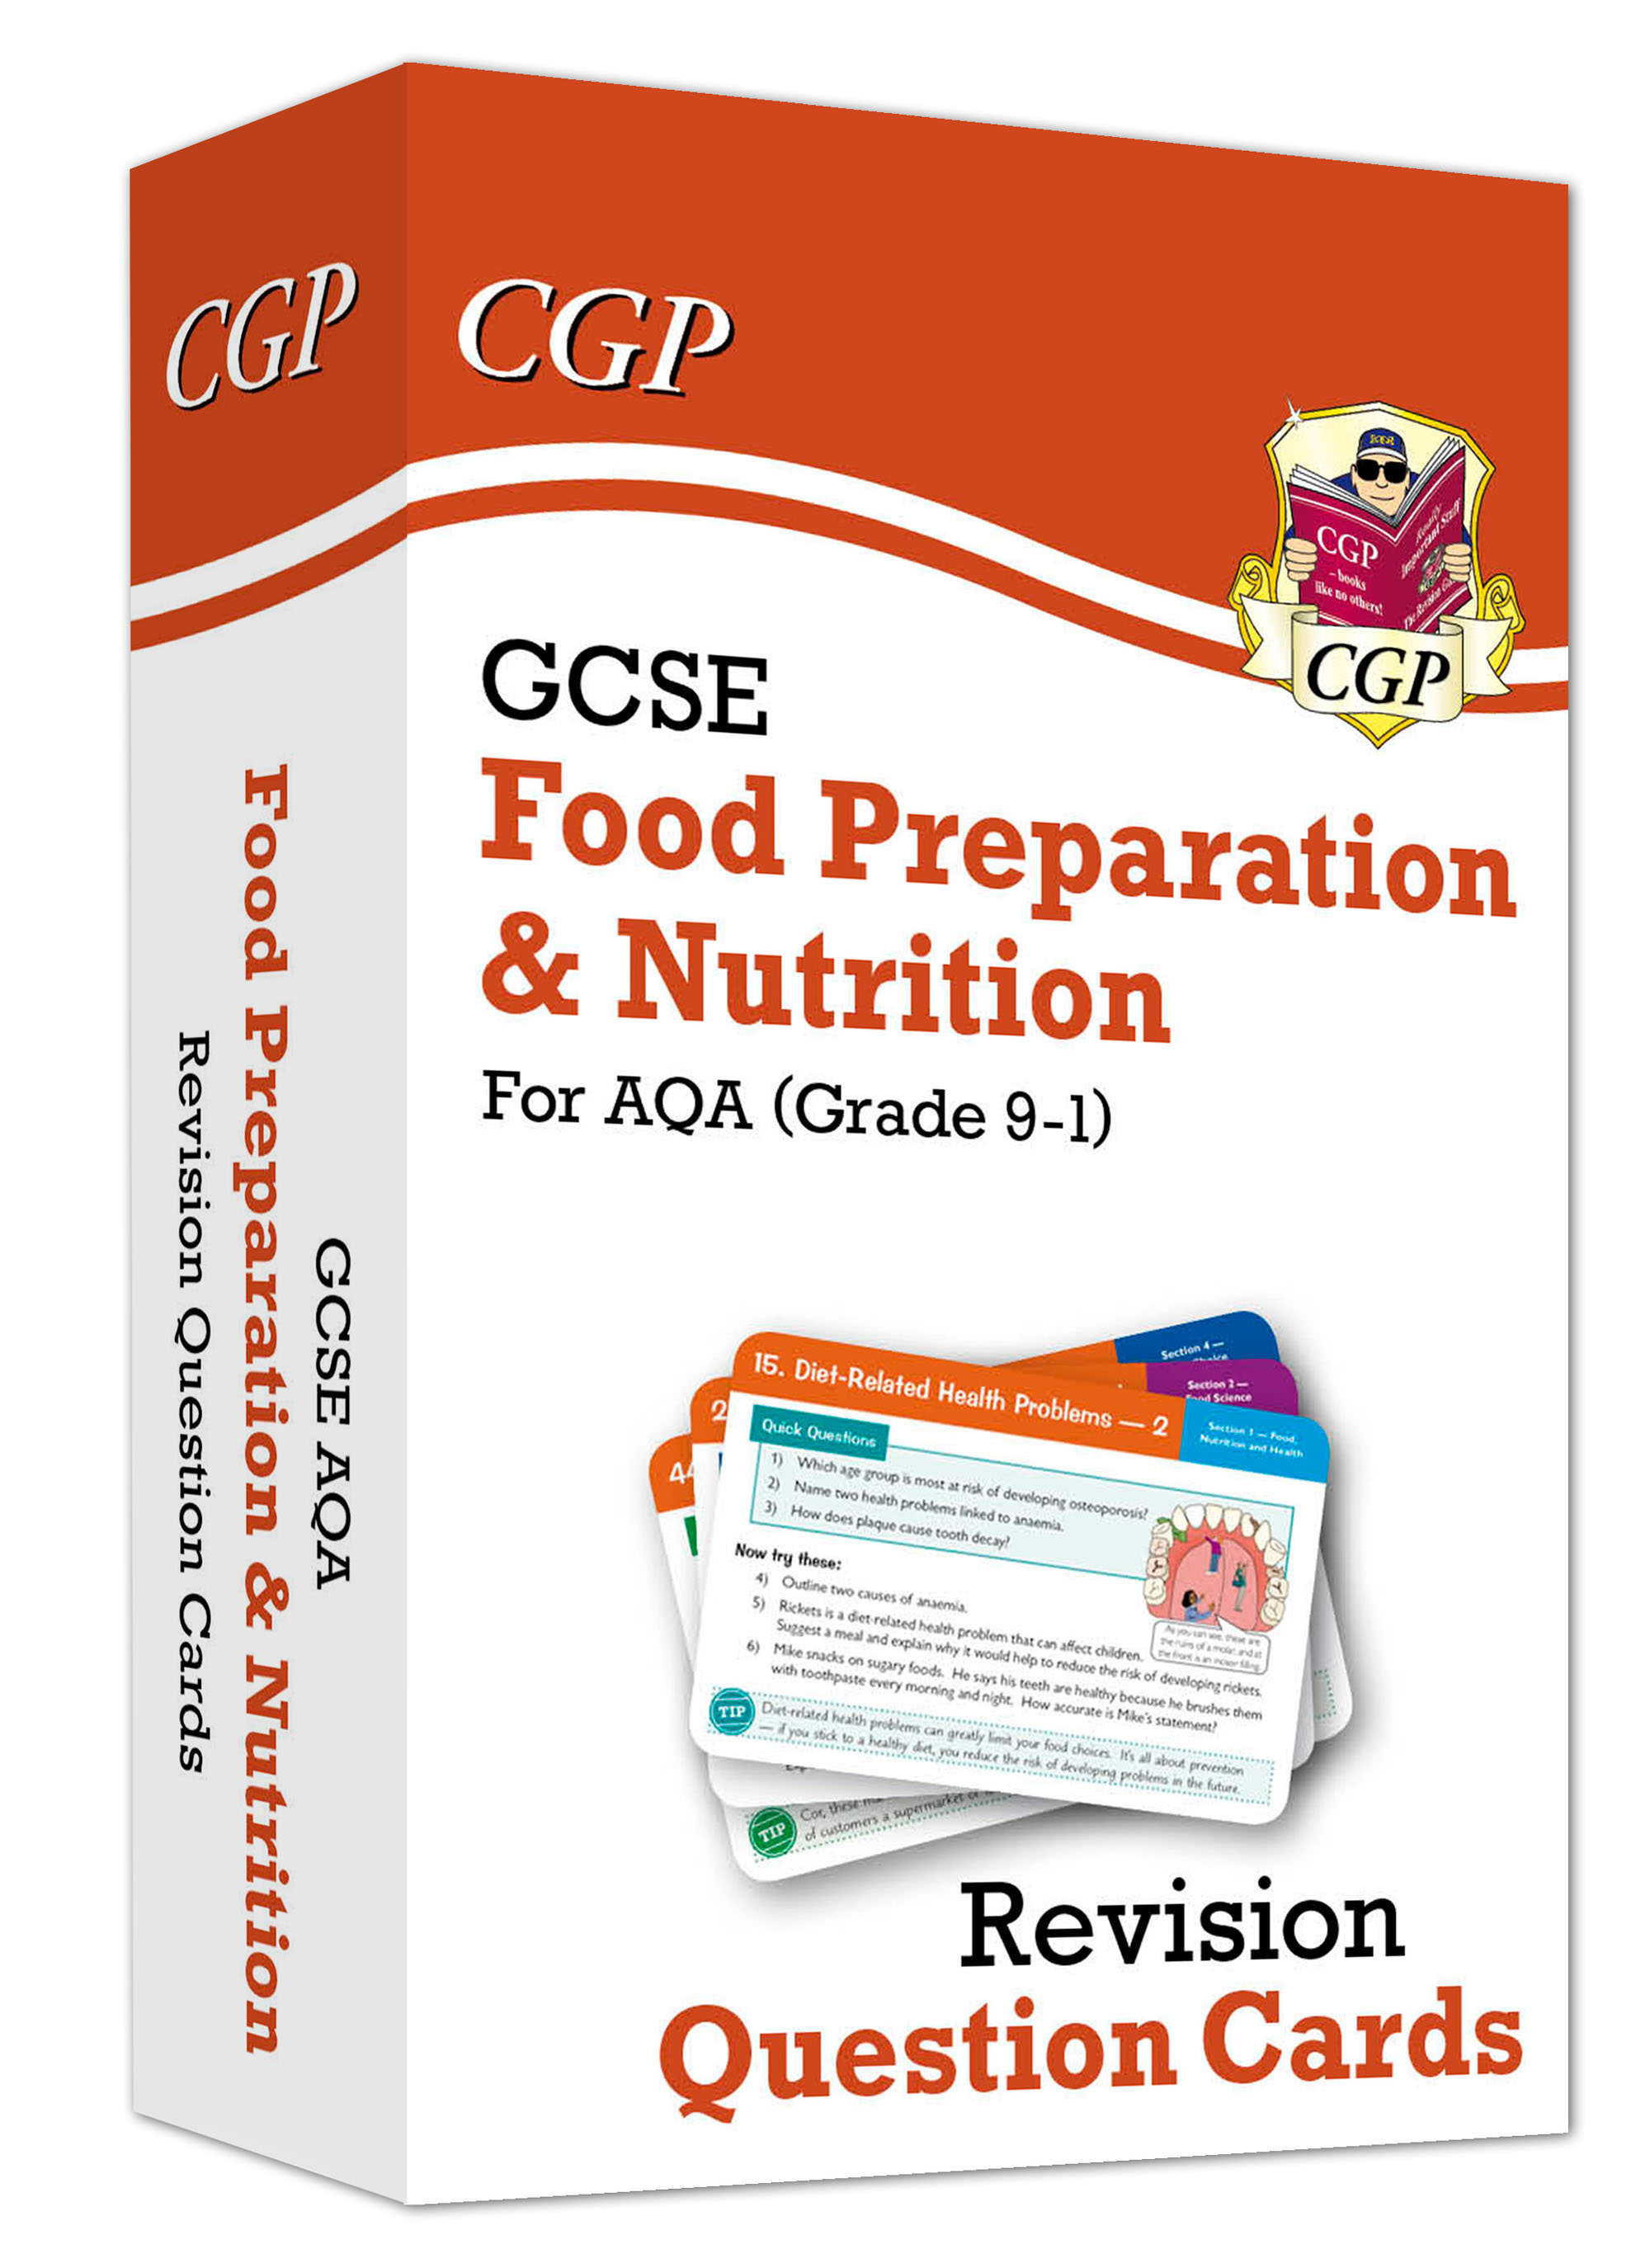 FNAF41D - New Grade 9-1 GCSE Food Preparation & Nutrition AQA Revision Question Cards Online Edition